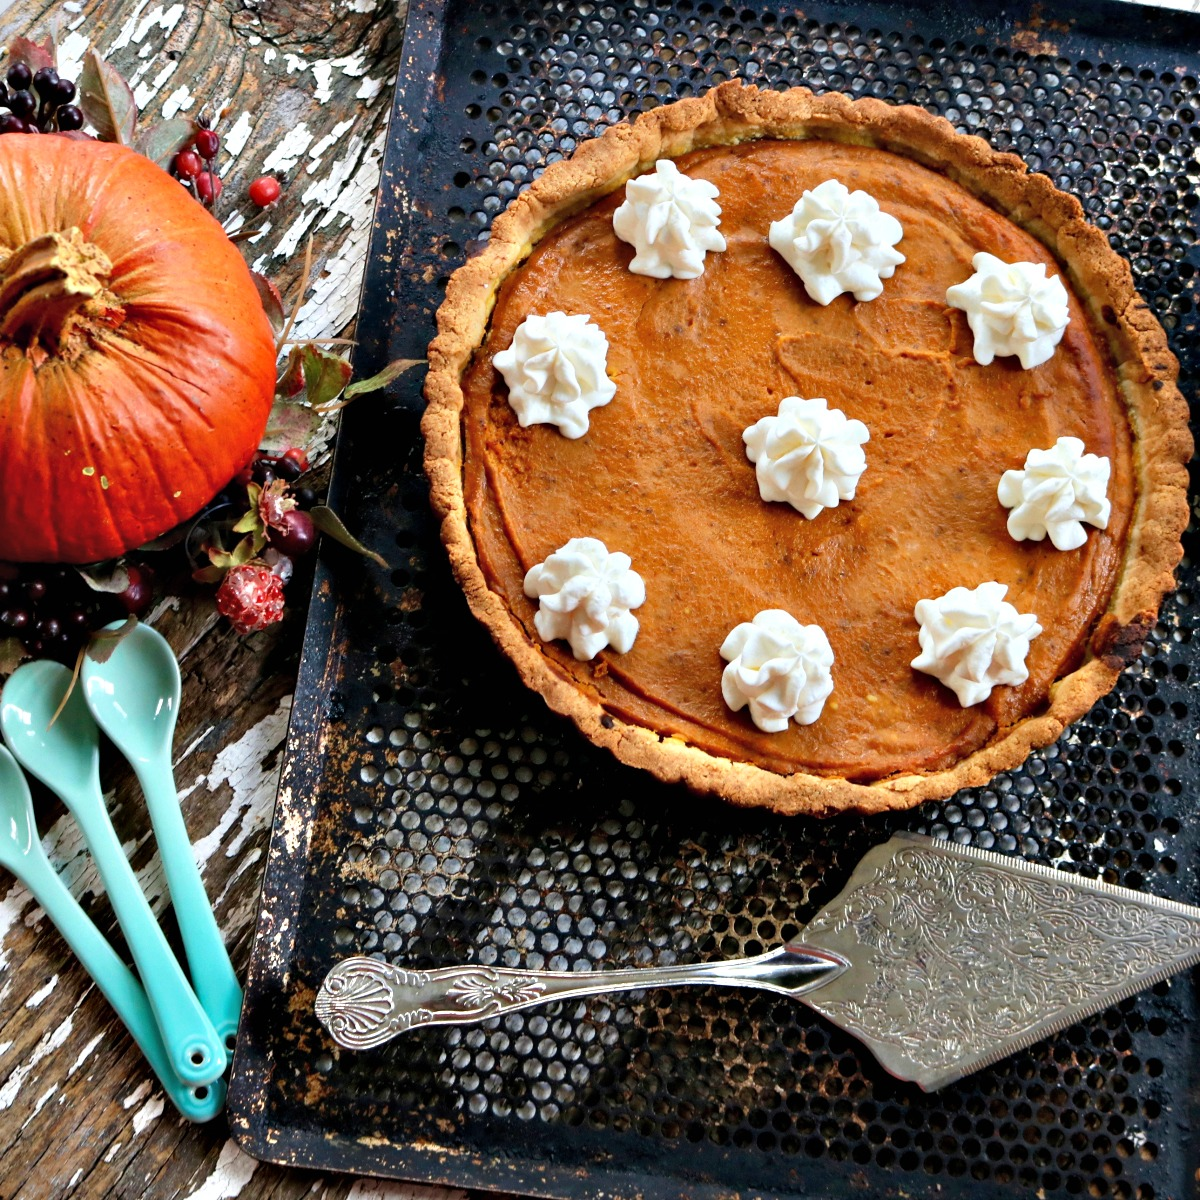 Make Low Carb Pumpkin Pie, Keto Friendly, Almond Flour Crust from Spinach Tiger